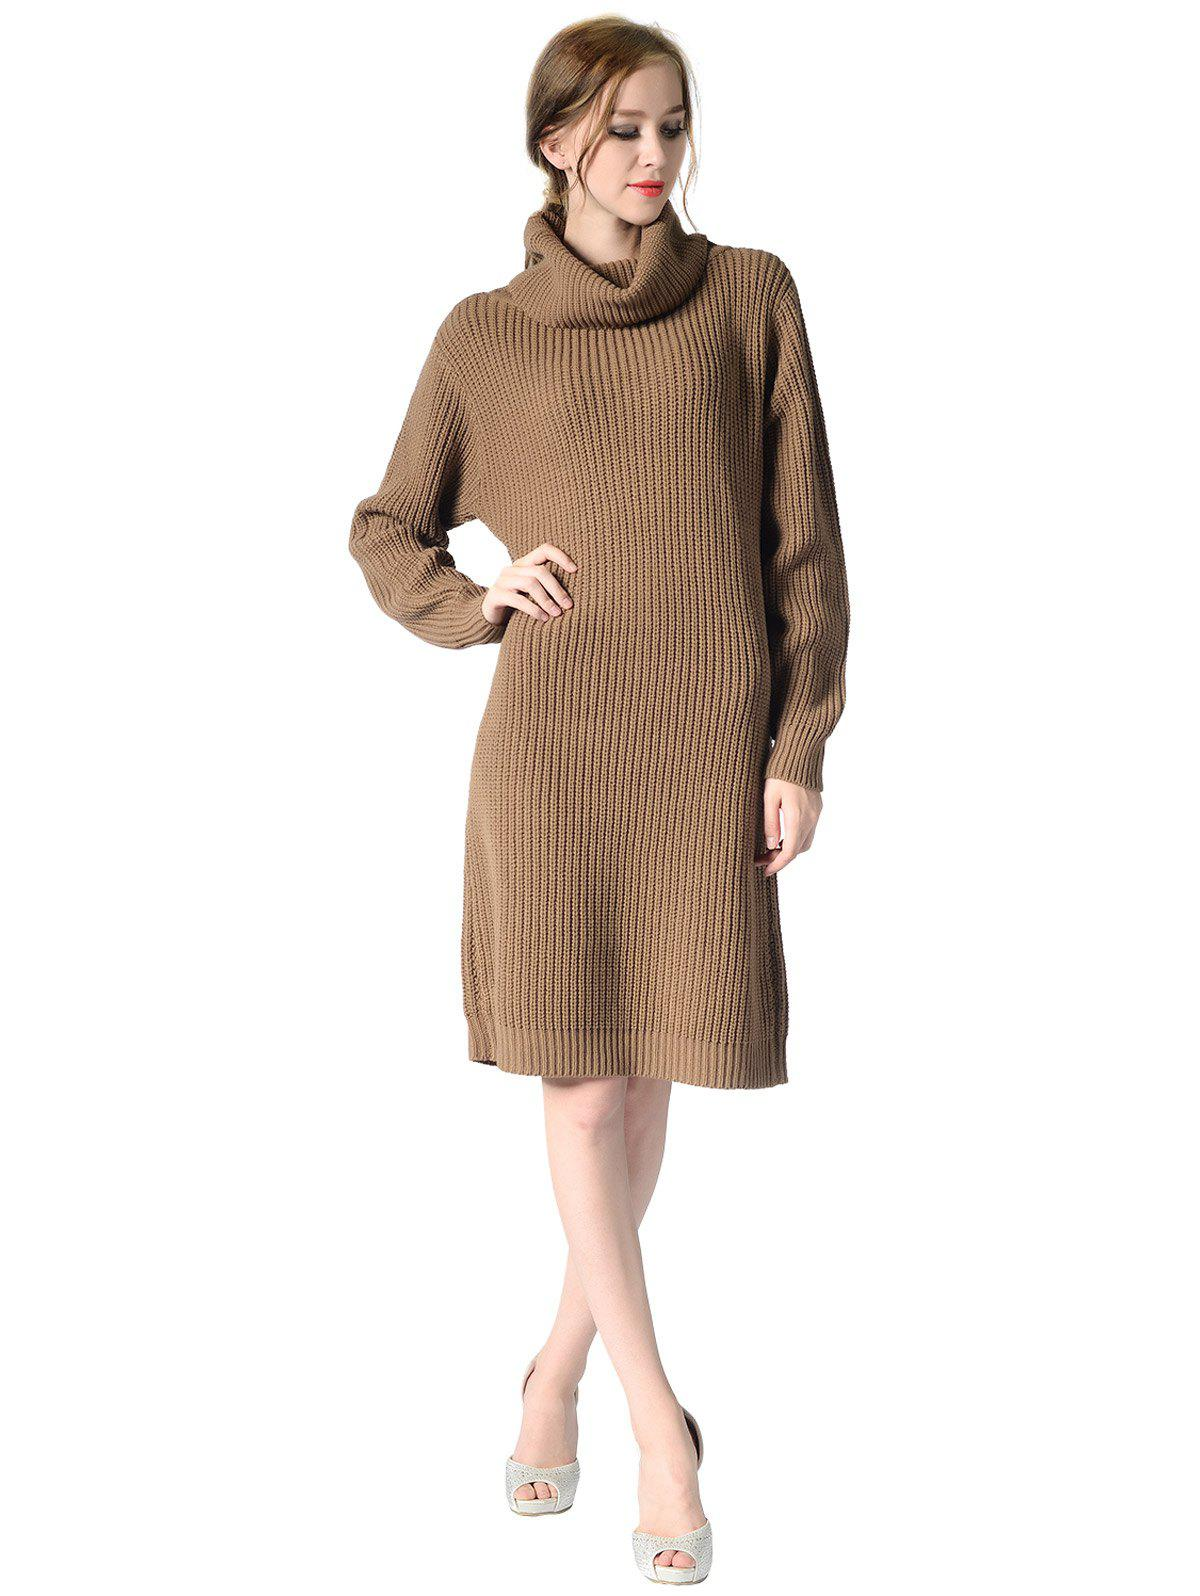 Unique Women's Turtleneck neck  Long sleeves rib kniting  casual Basic  sweater dress